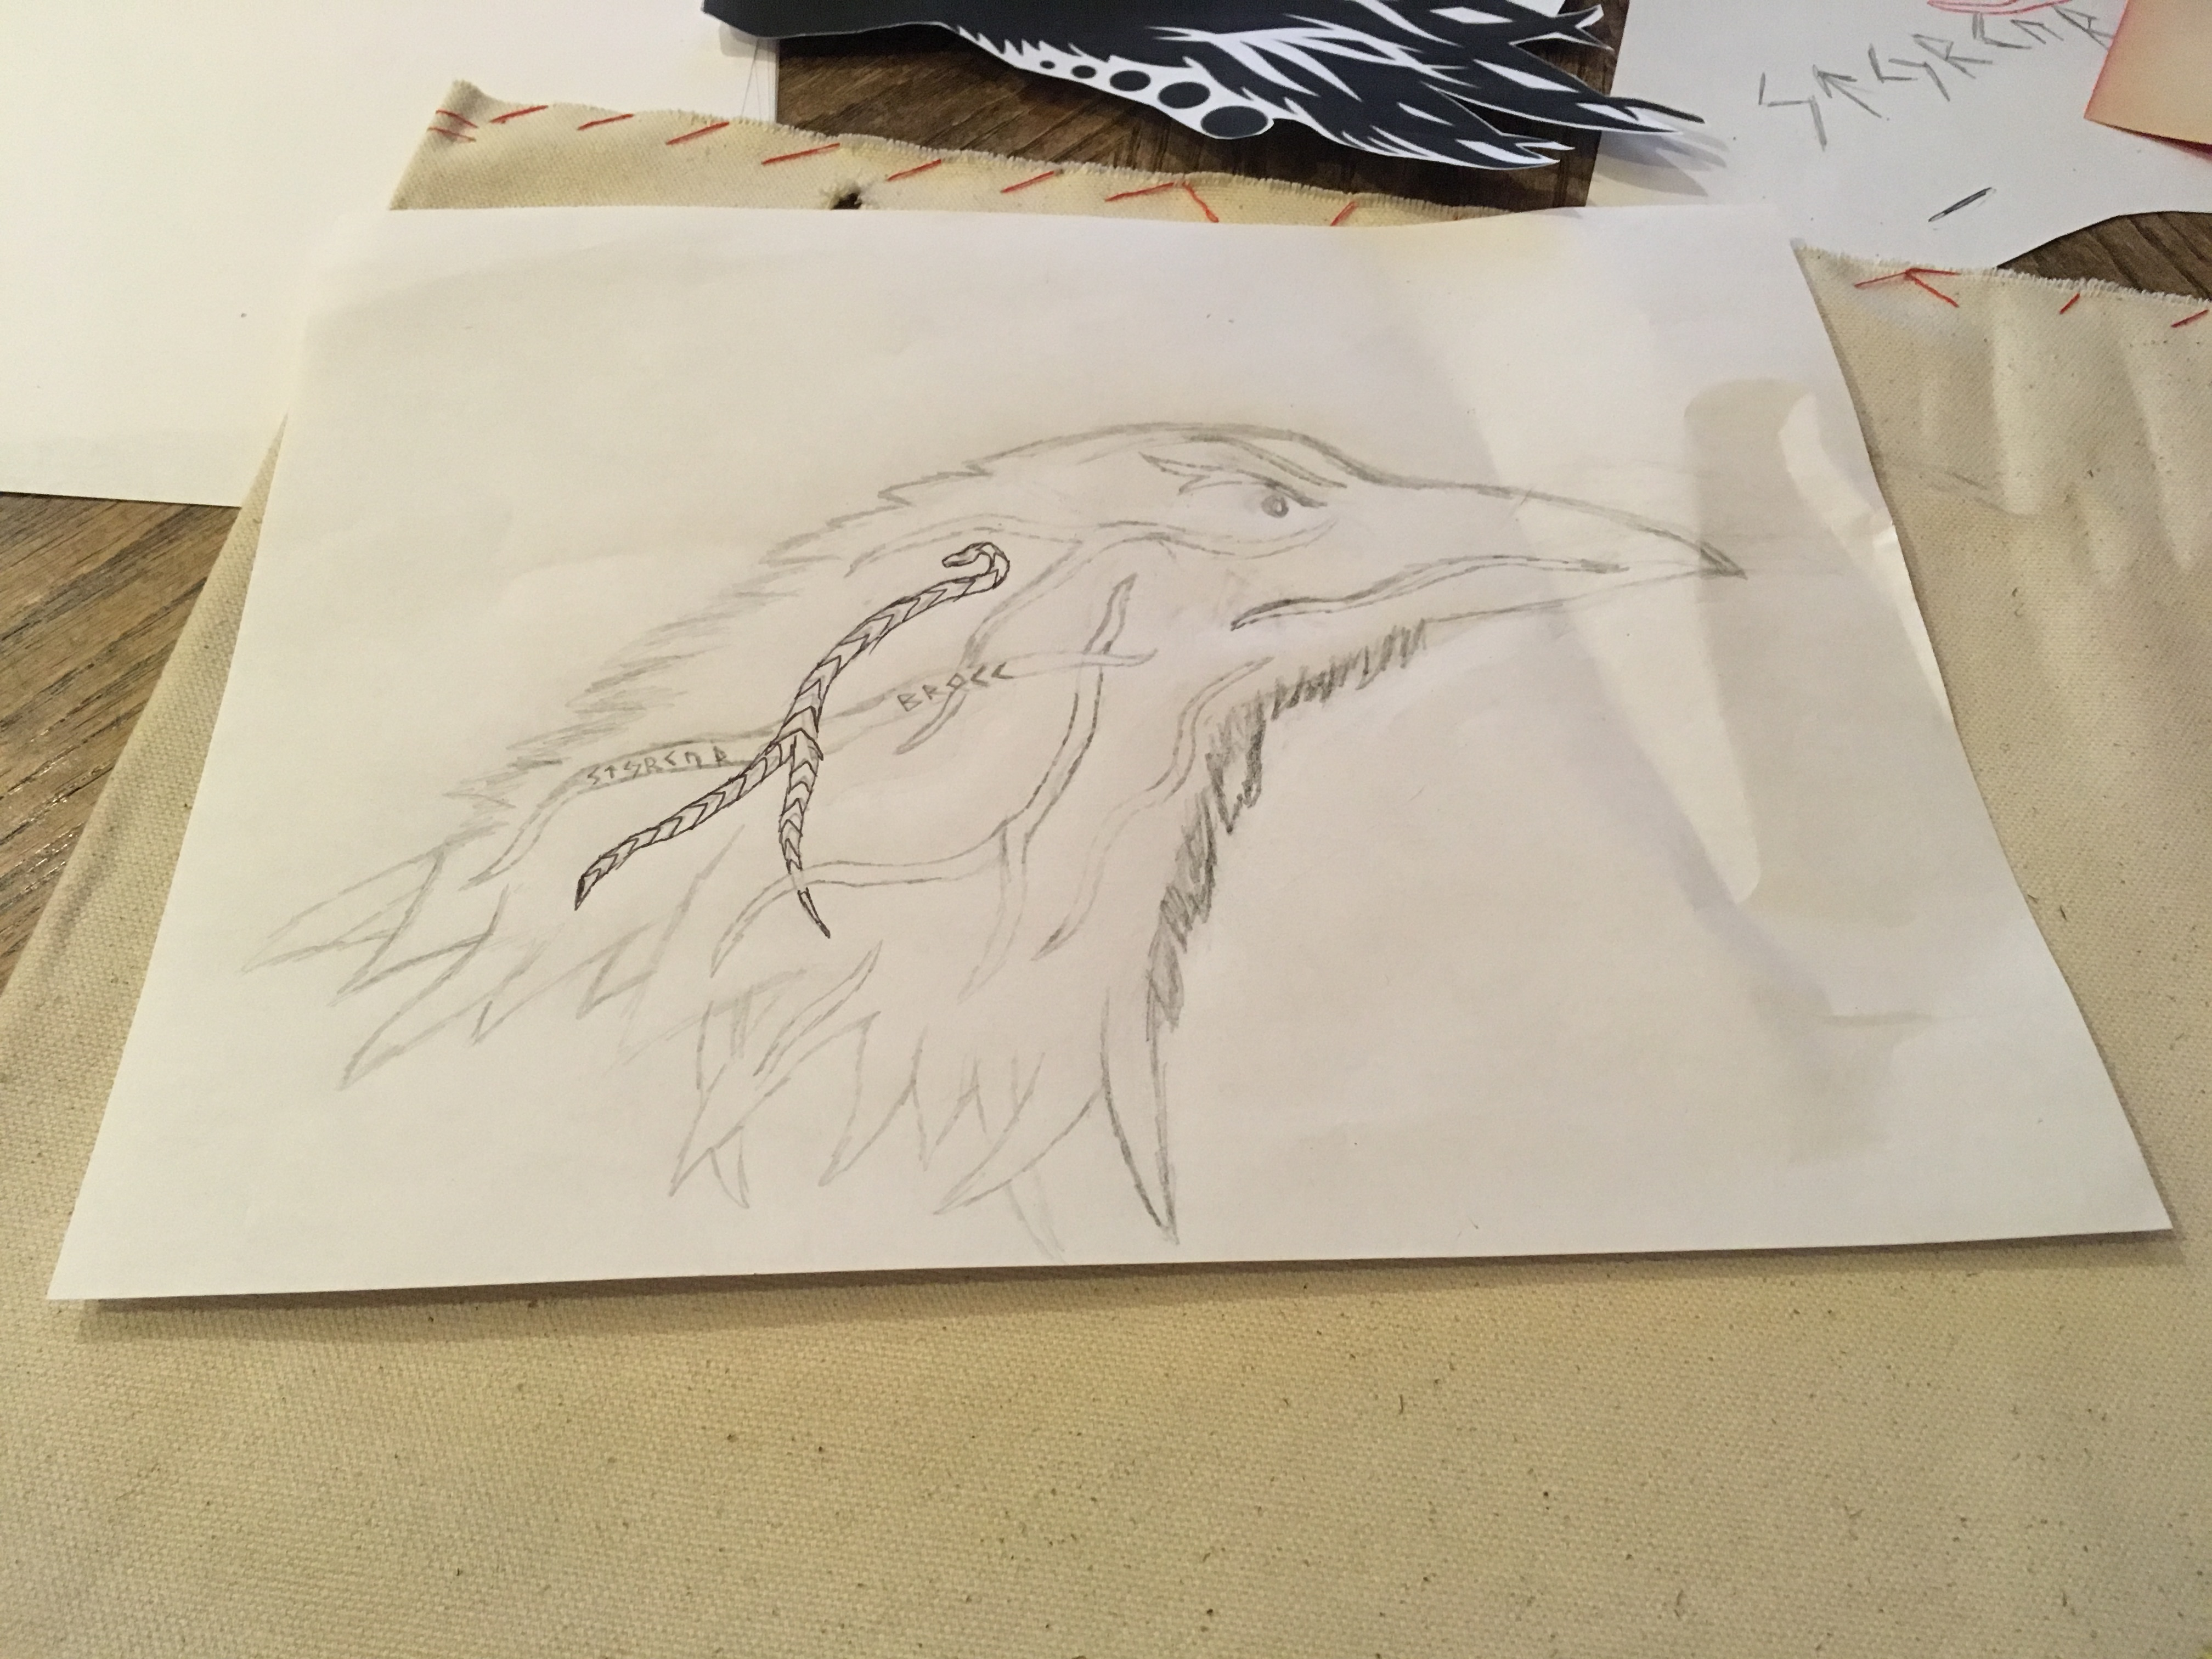 Picture of Drawing, Sketching, Detailing, Call It What You Want.